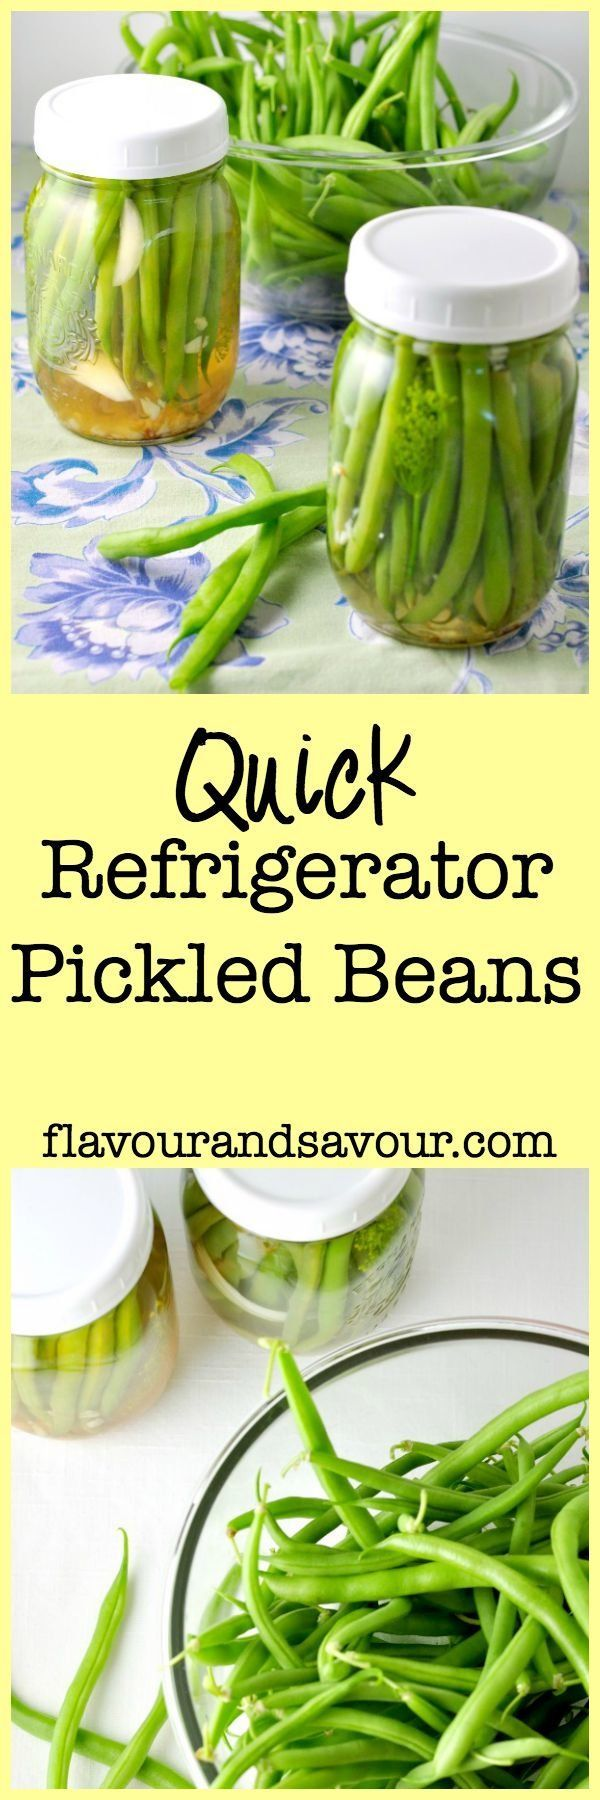 An easy-to-follow recipe for quick Refrigerator Pickled Beans. Great for snacking, as a side, or as a garnish for Caesar cocktails.